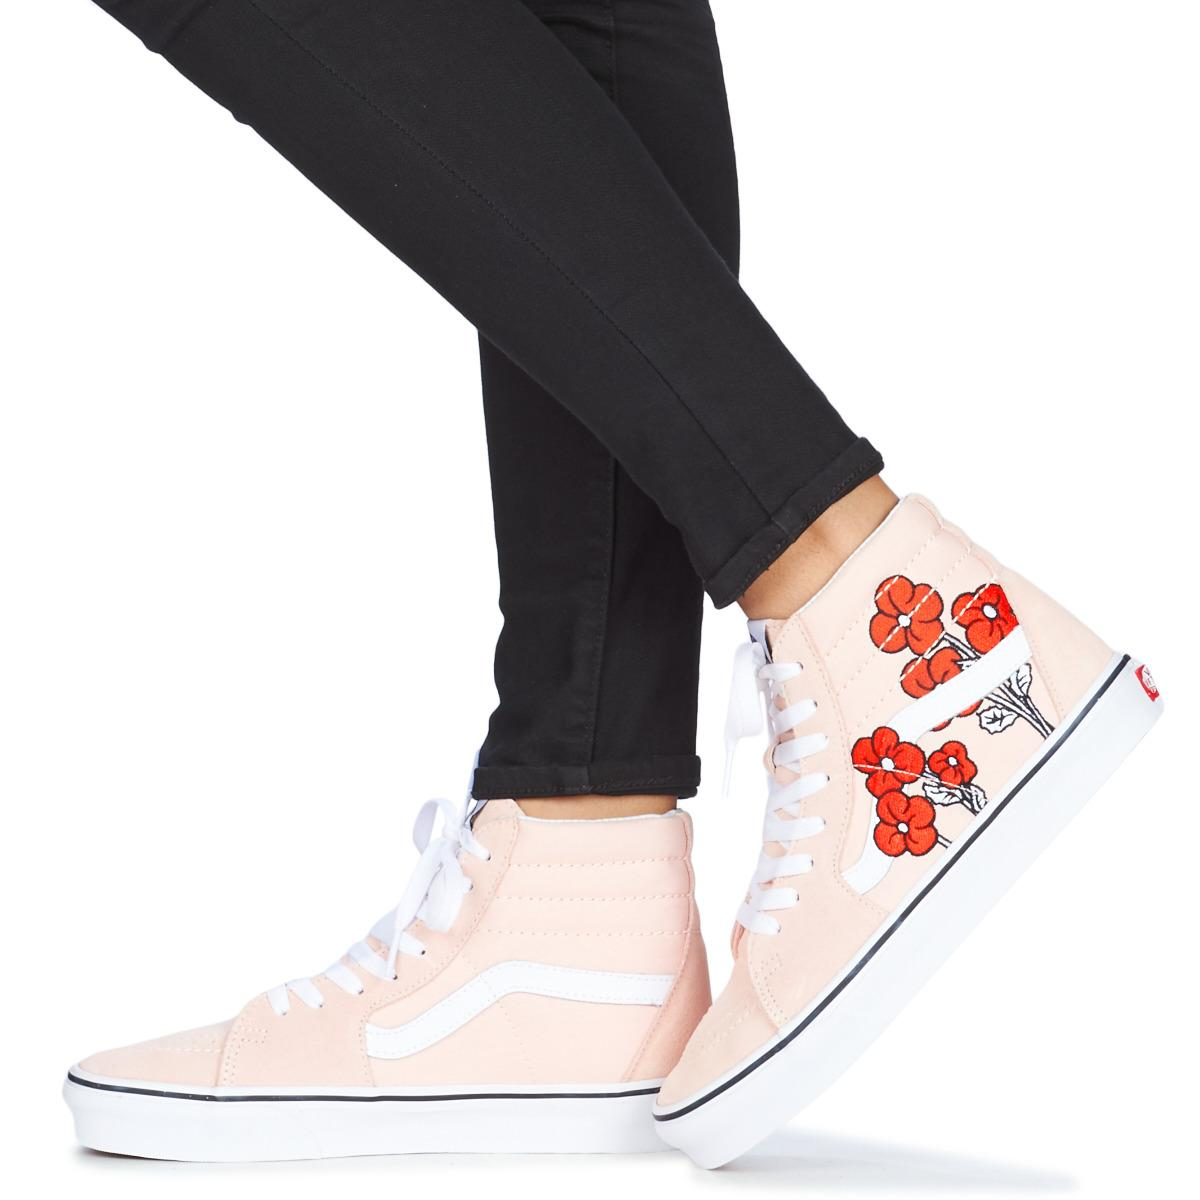 daf5d44ca0 Vans Disney Sk8-hi Women s Shoes (high-top Trainers) In Pink in Pink ...